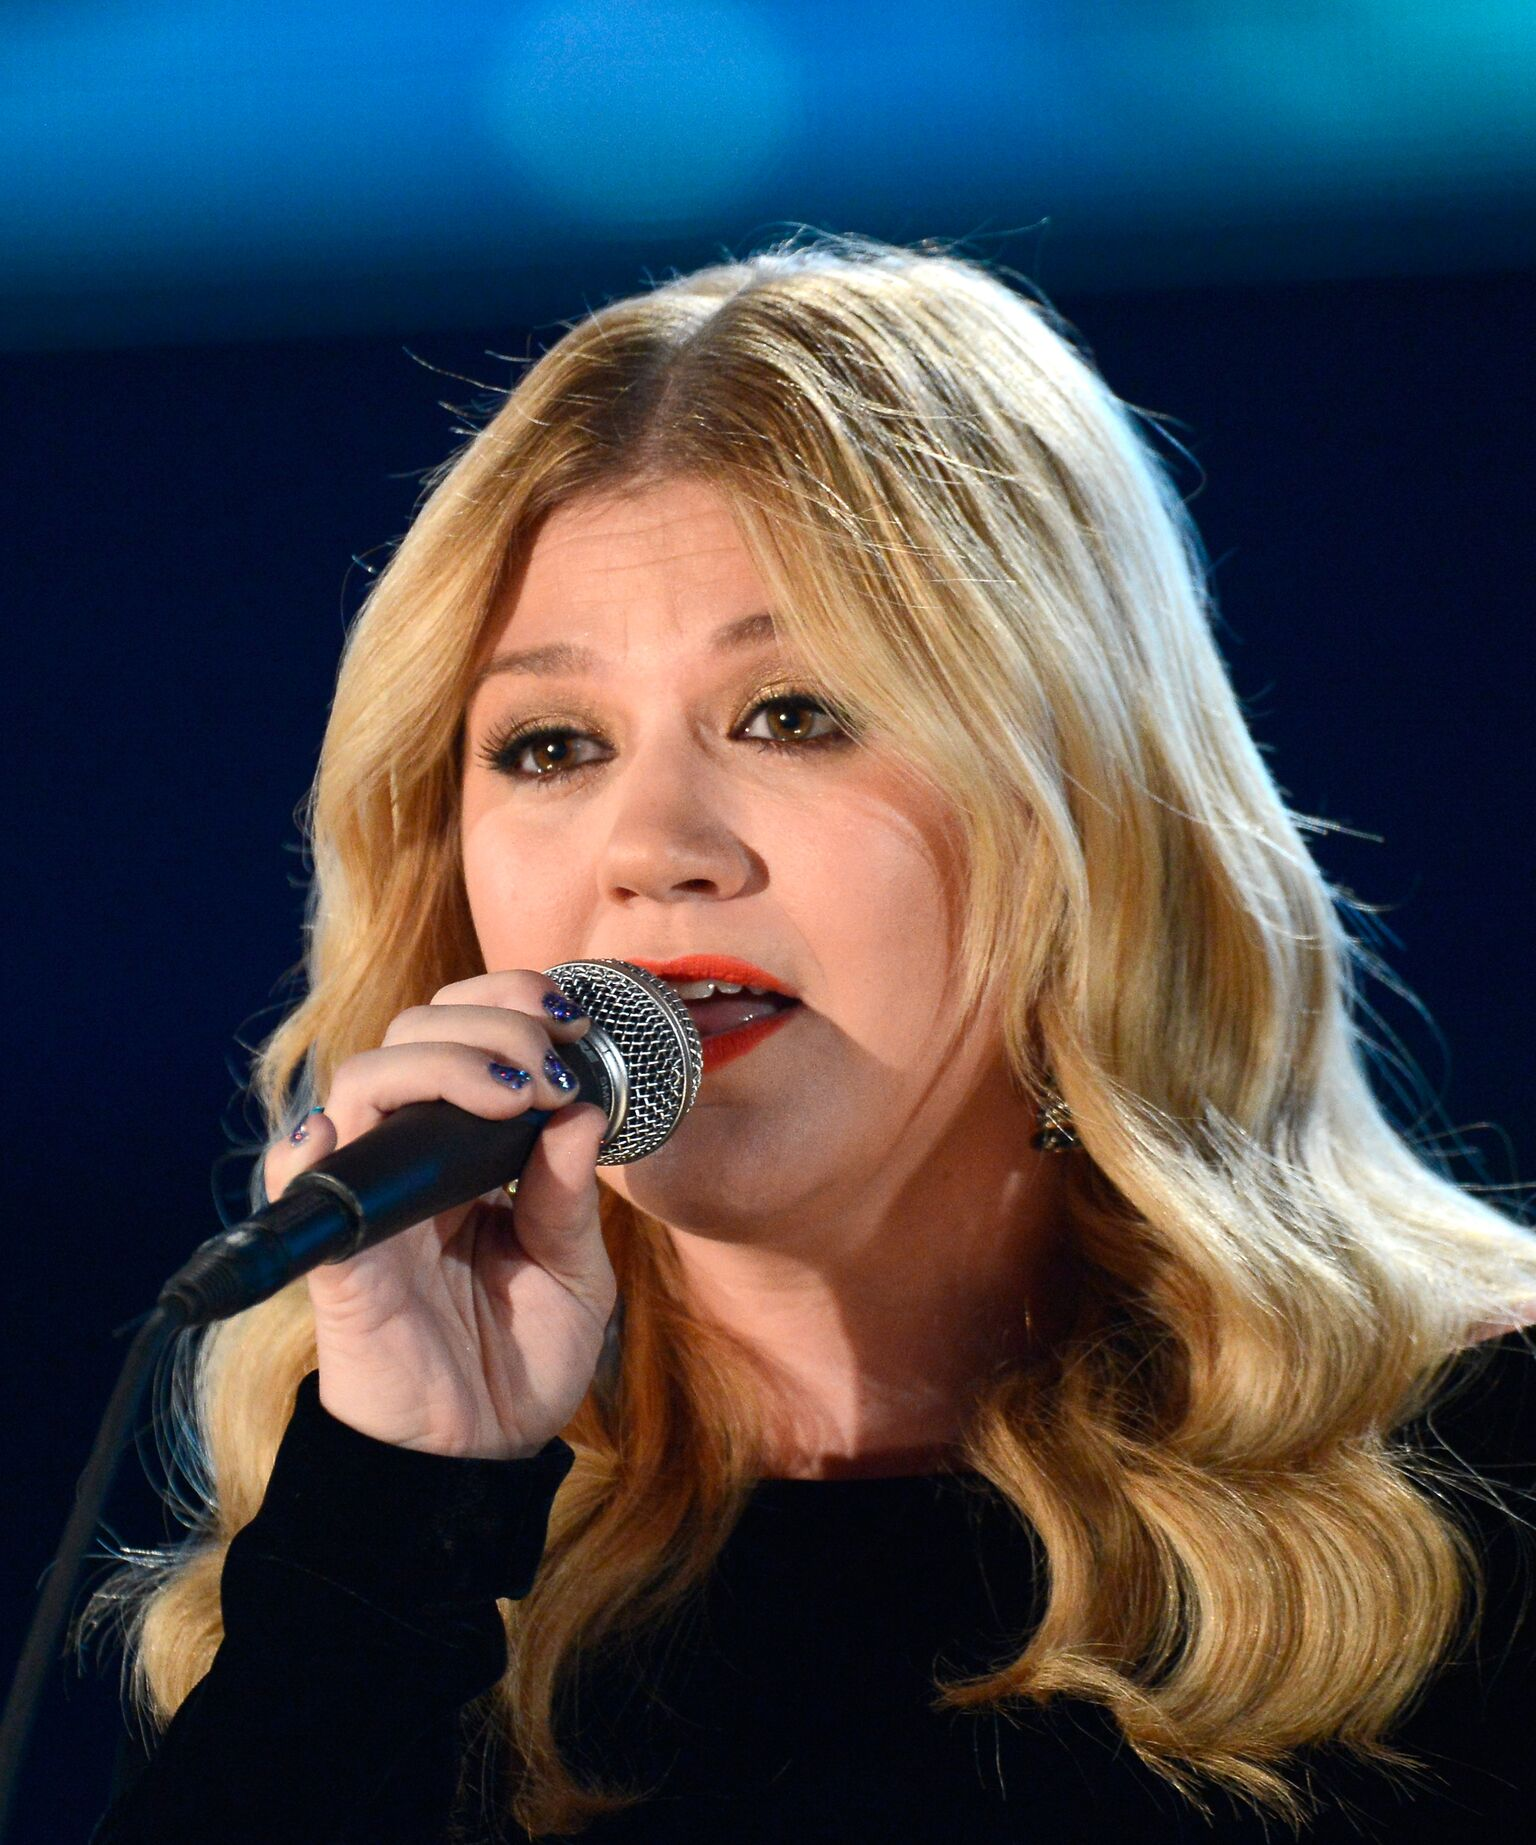 Kelly Clarkson performs onstage at the 55th Annual GRAMMY Awards at Staples Center | Getty Images